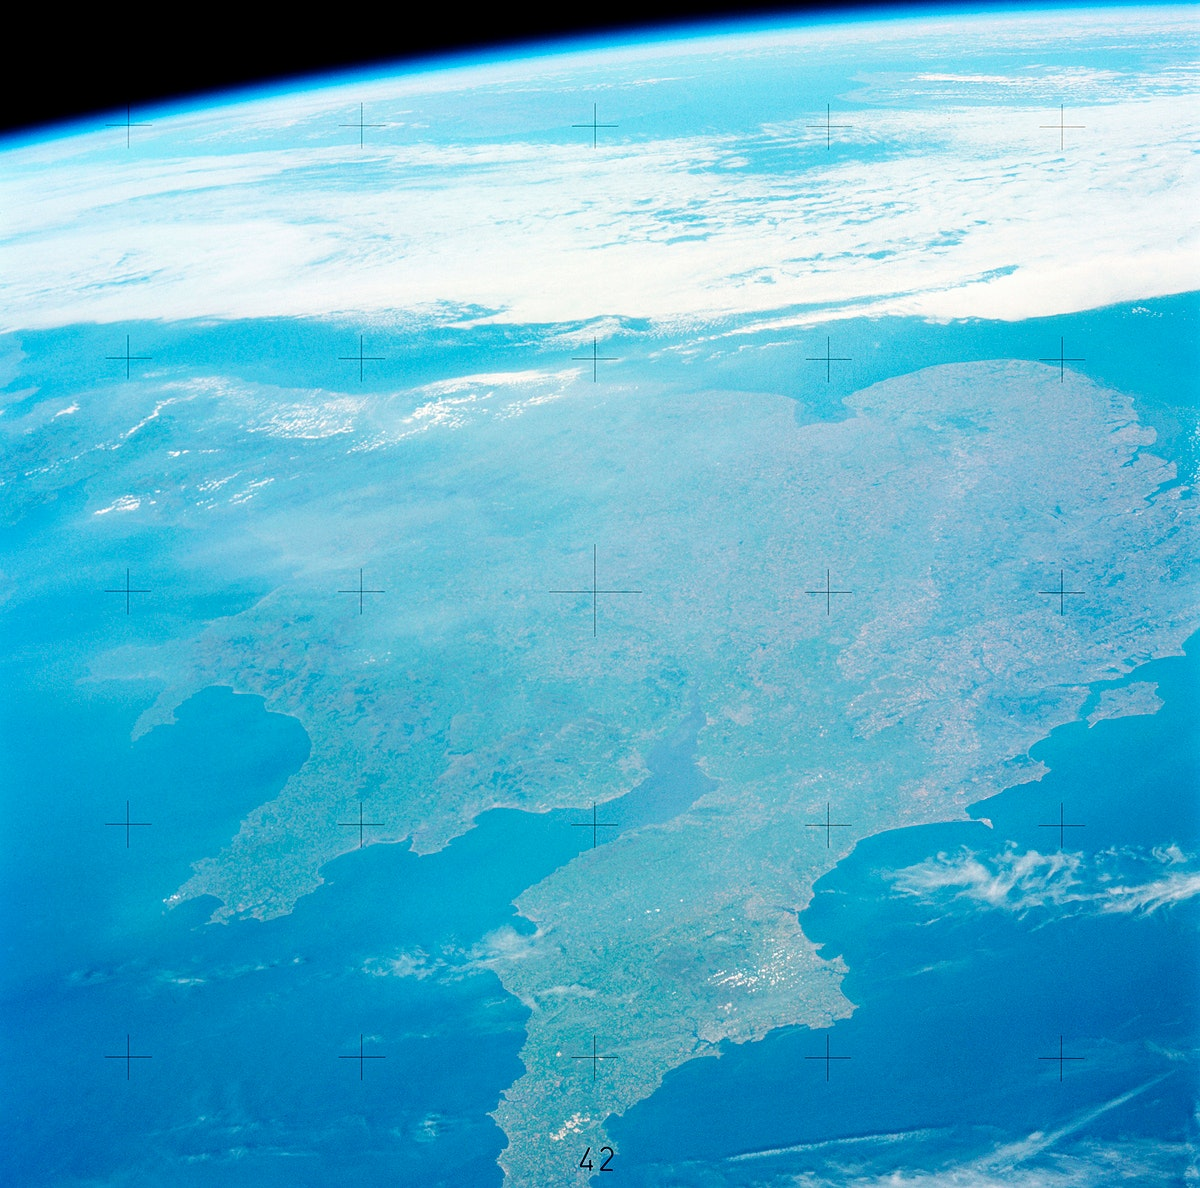 View of a portion of Great Britain looking northeastward. Original from NASA. Digitally enhanced by rawpixel.